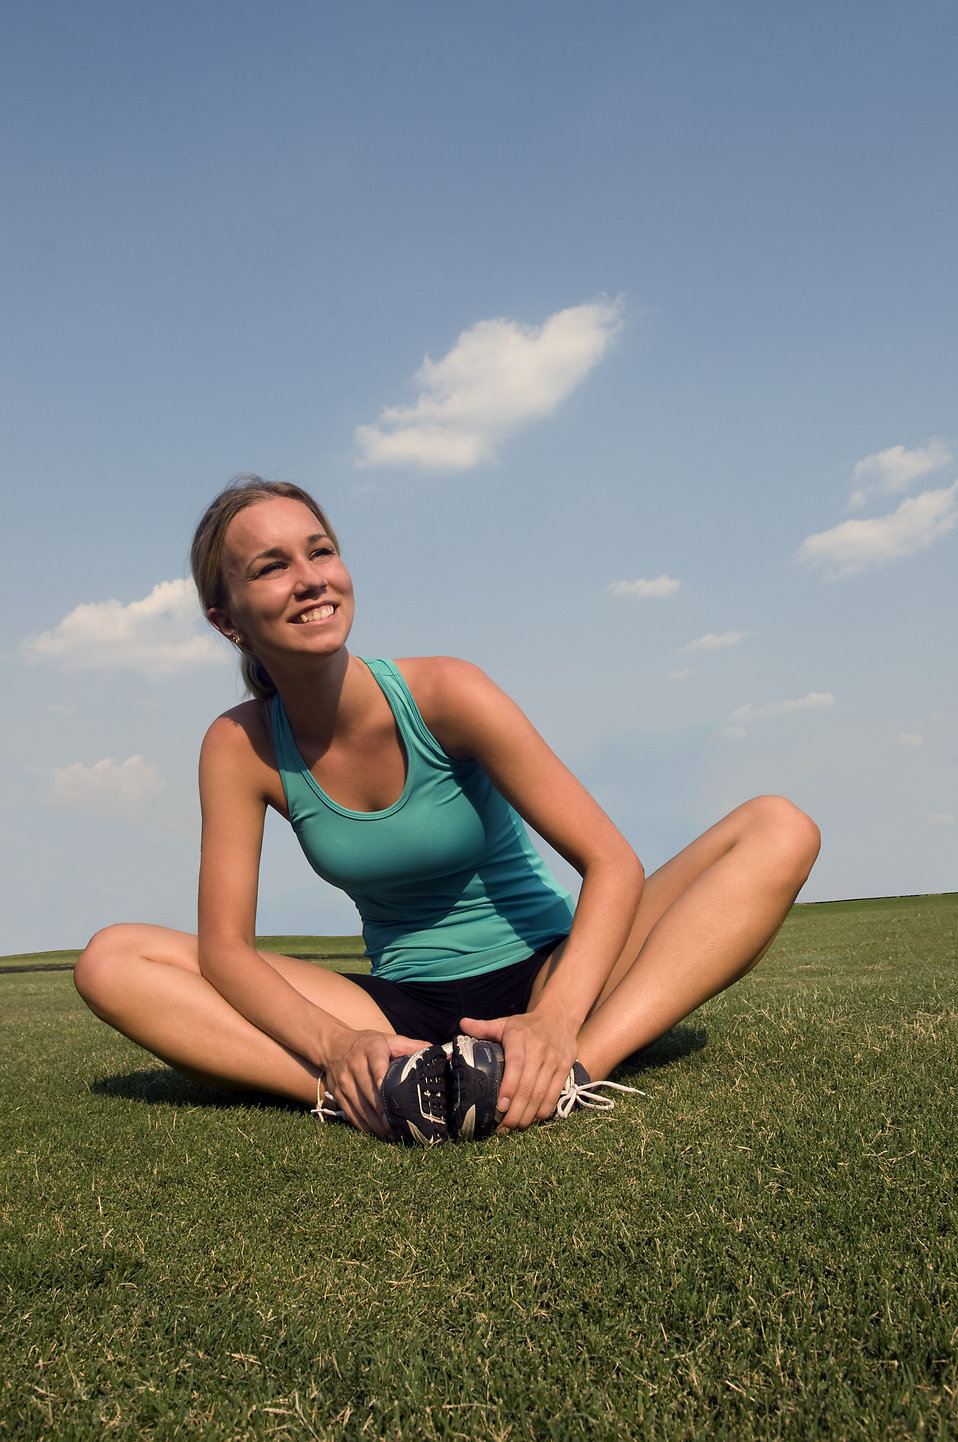 15313-a-healthy-young-woman-stretching-outdoors-pv